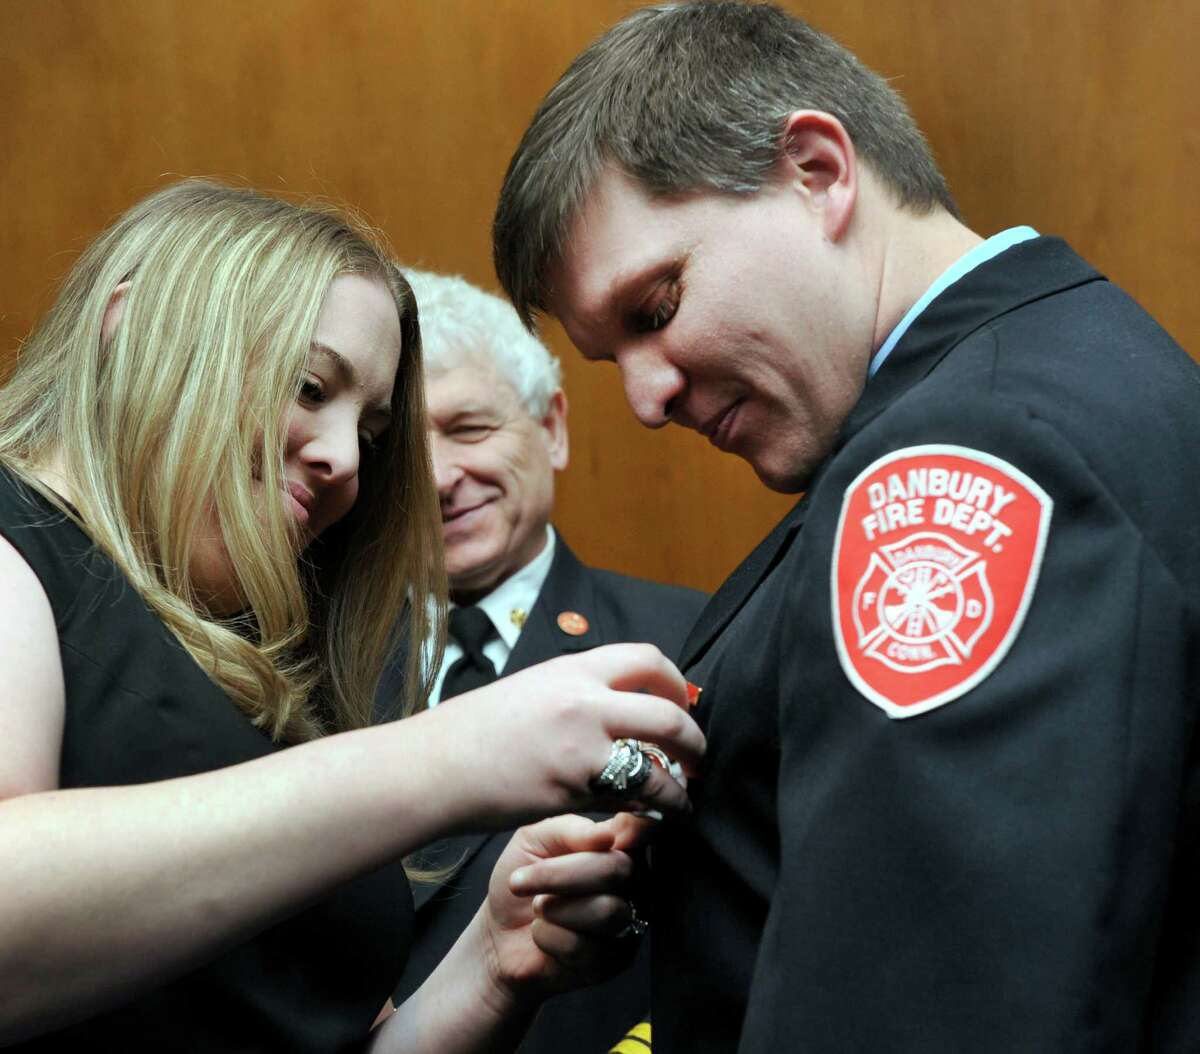 Jessica Hanson, 29, pins a badge on her husband Shey Hanson, 35, who has just been promoted to the rank of lieutenant in the Danbury Fire Department Wednesday, March 5, 2014, at ceremony at Danbury City Hall.